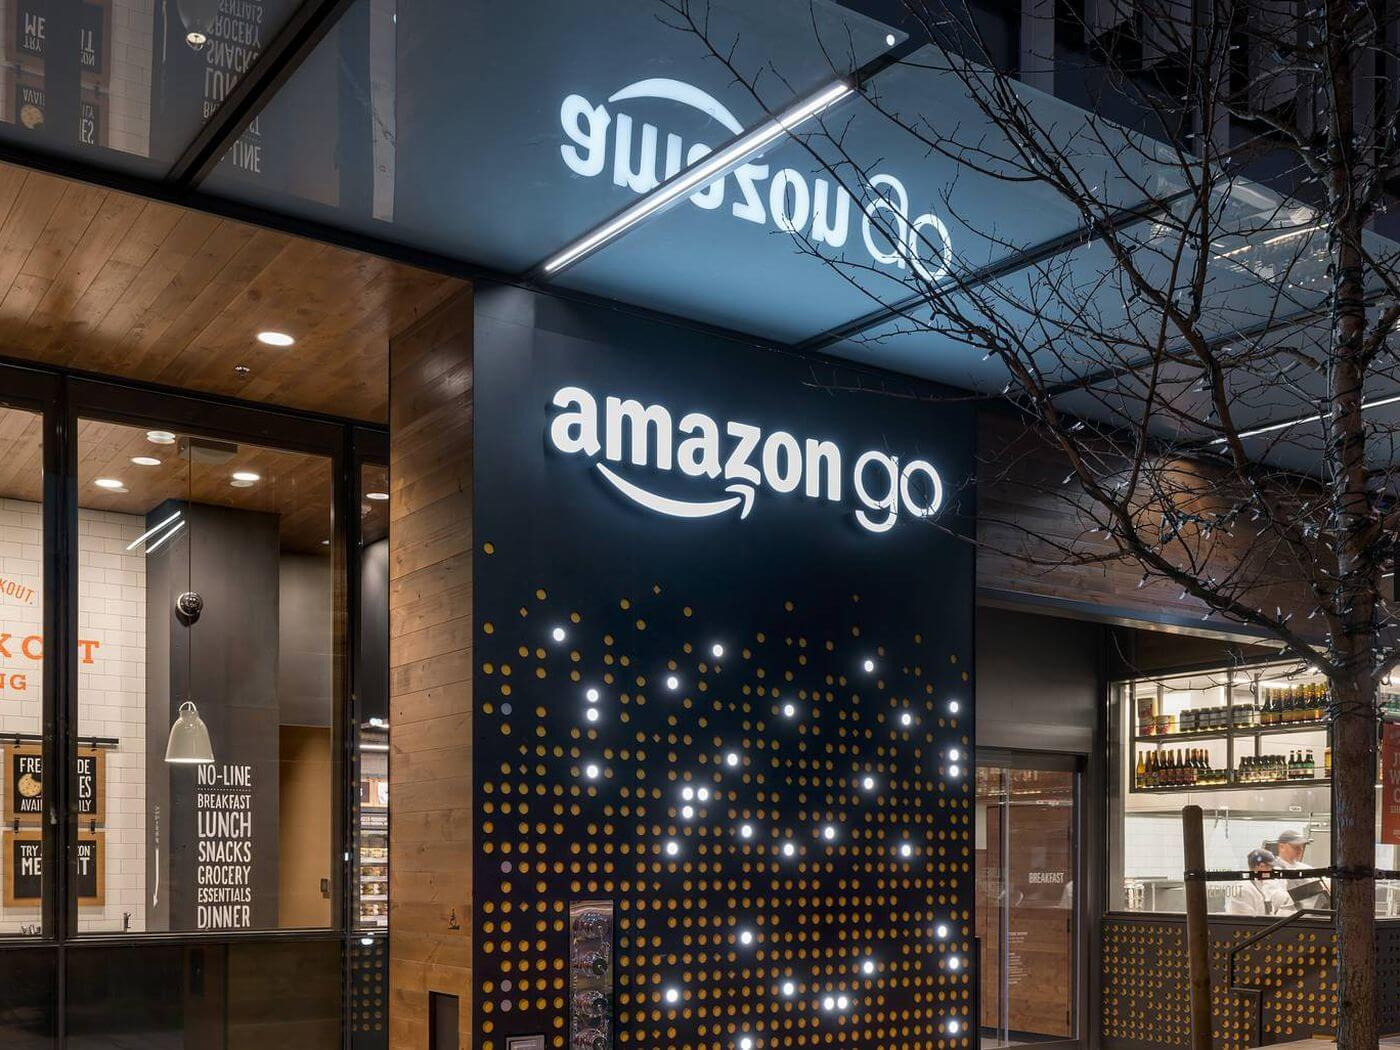 Amazon considers opening 3,000 cashierless Go stores